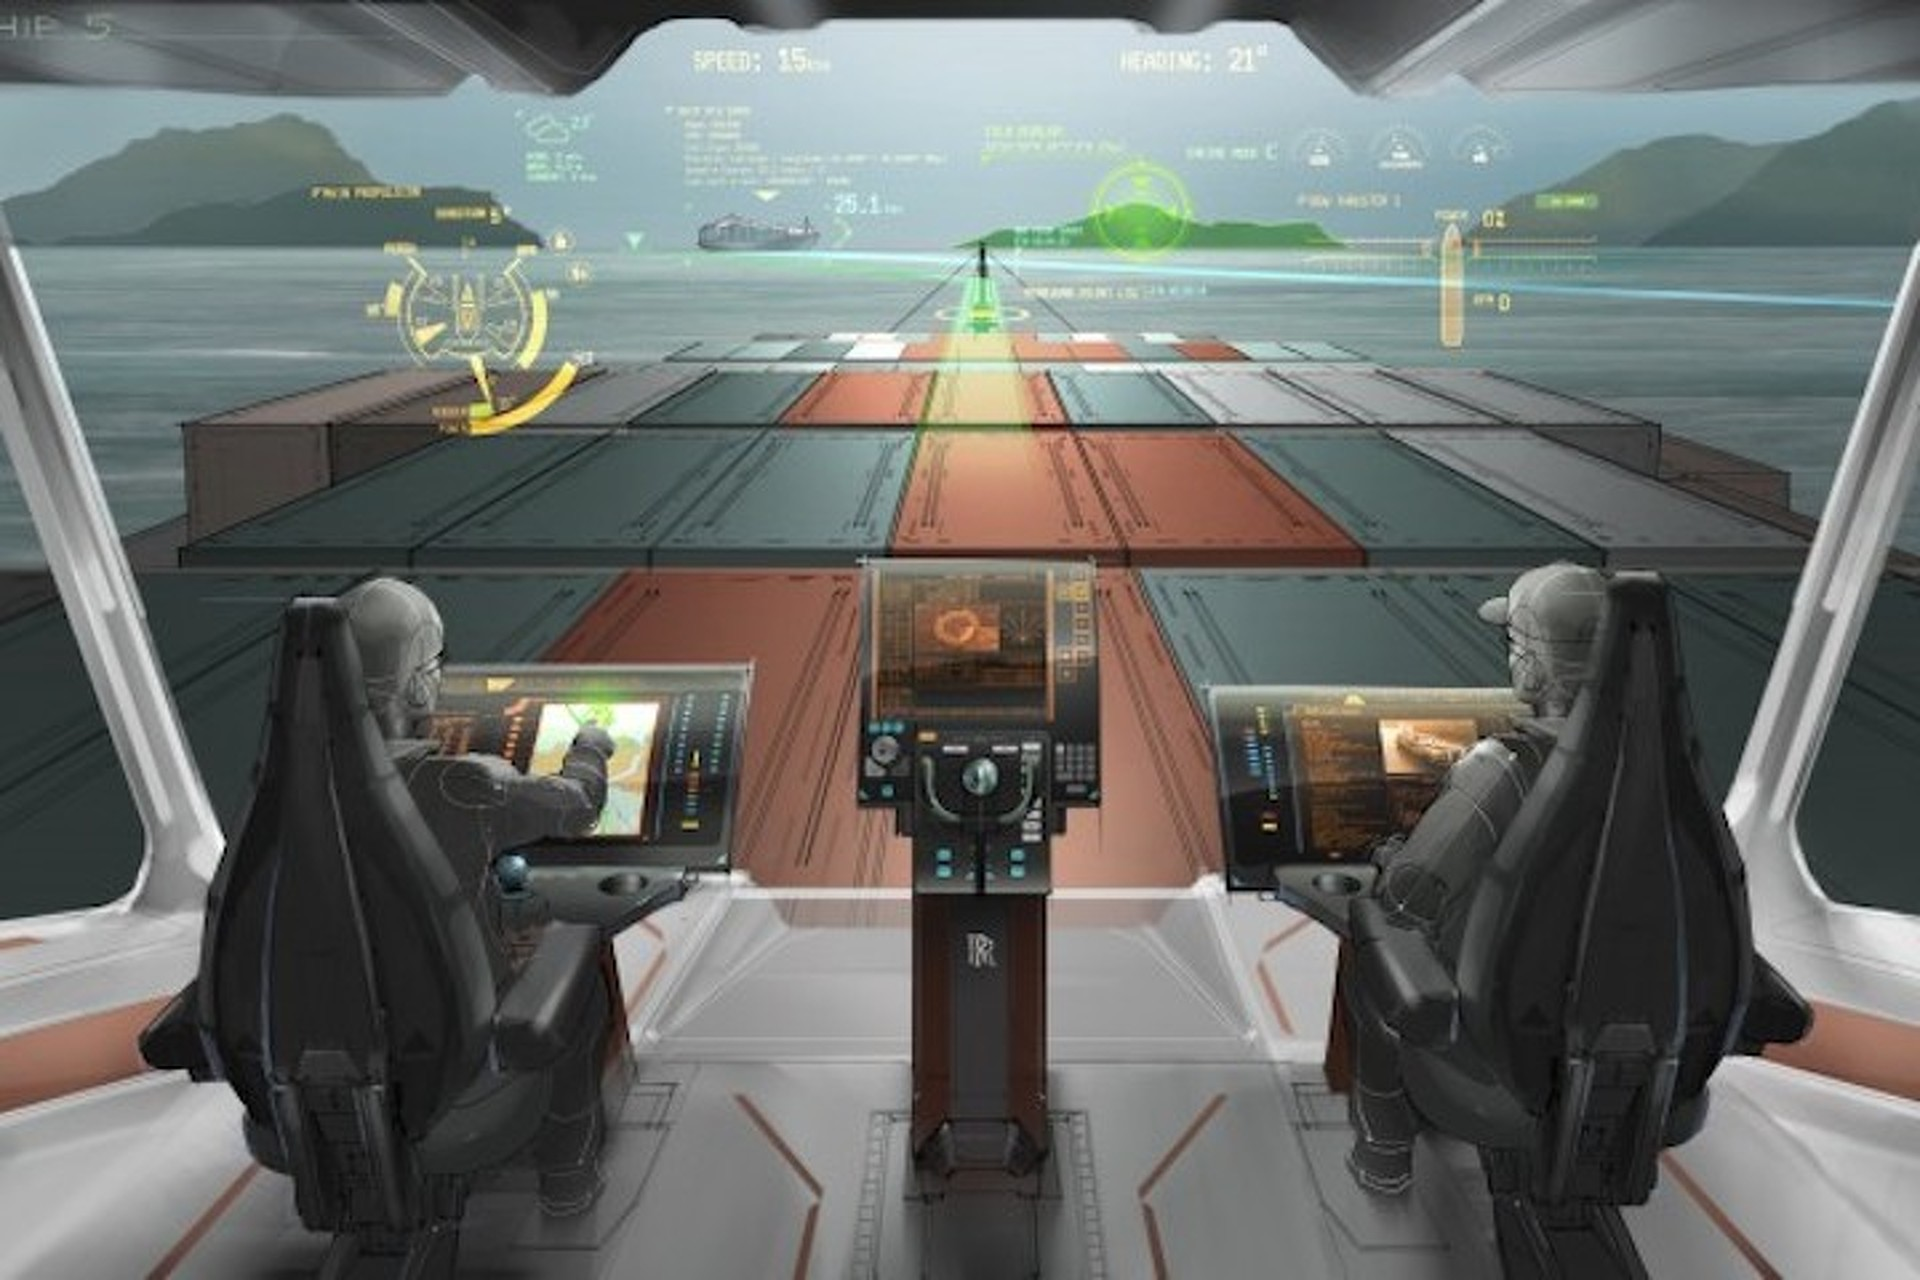 Cargo Ships of the Future Could Use Augmented Reality [W/Video]